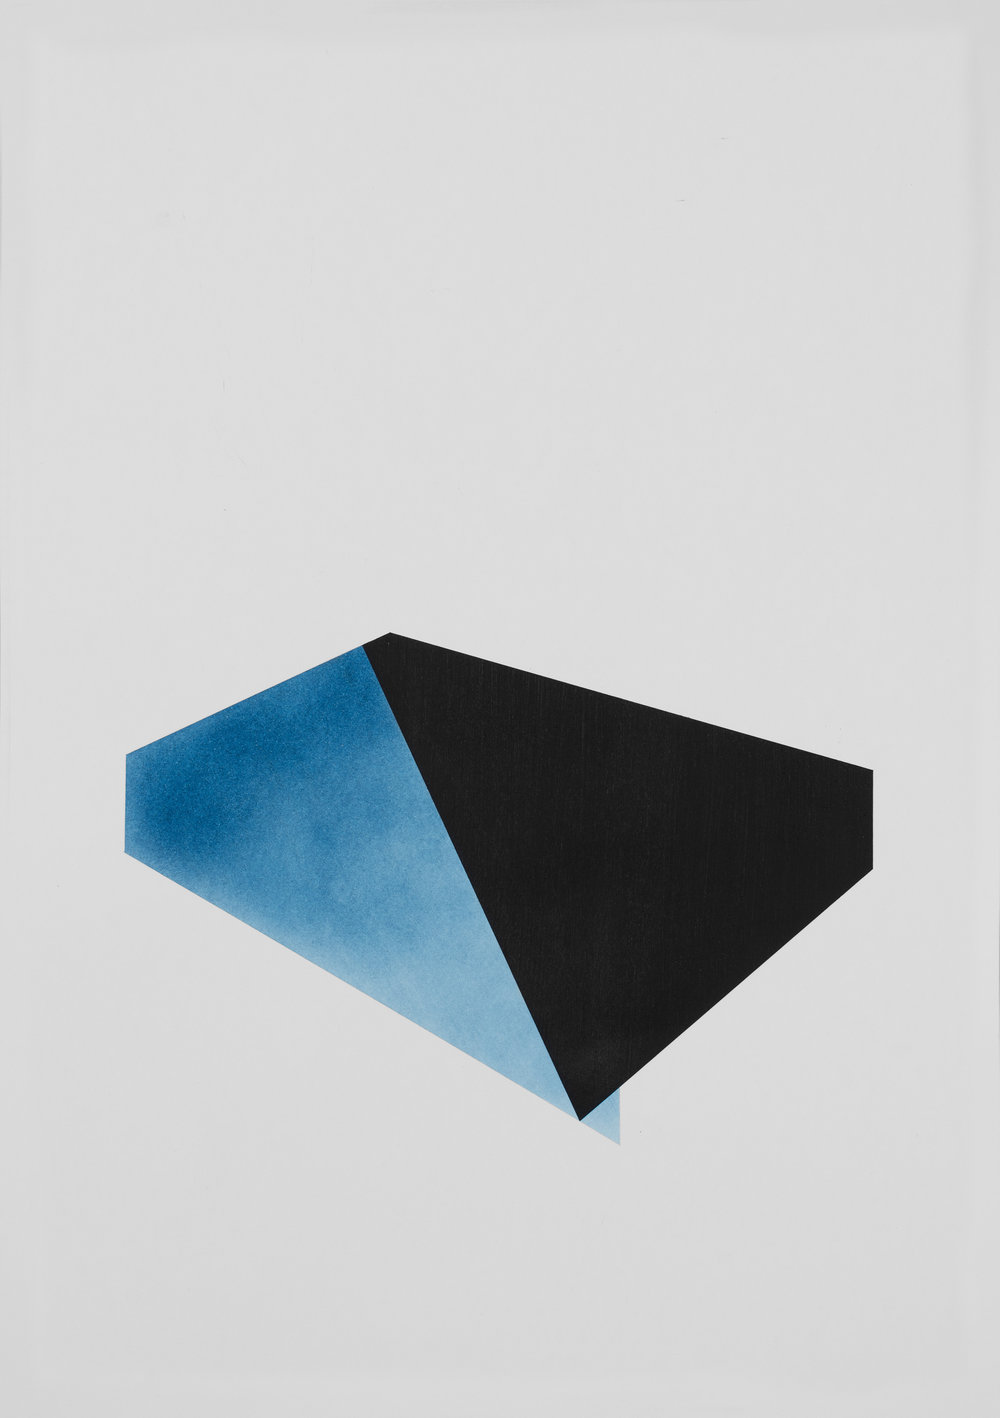 Over and above antwerp blue, acrylic and pigment on 220gsm acid free paper, 42cm x 59cm, copyright Patrick O'Donnell